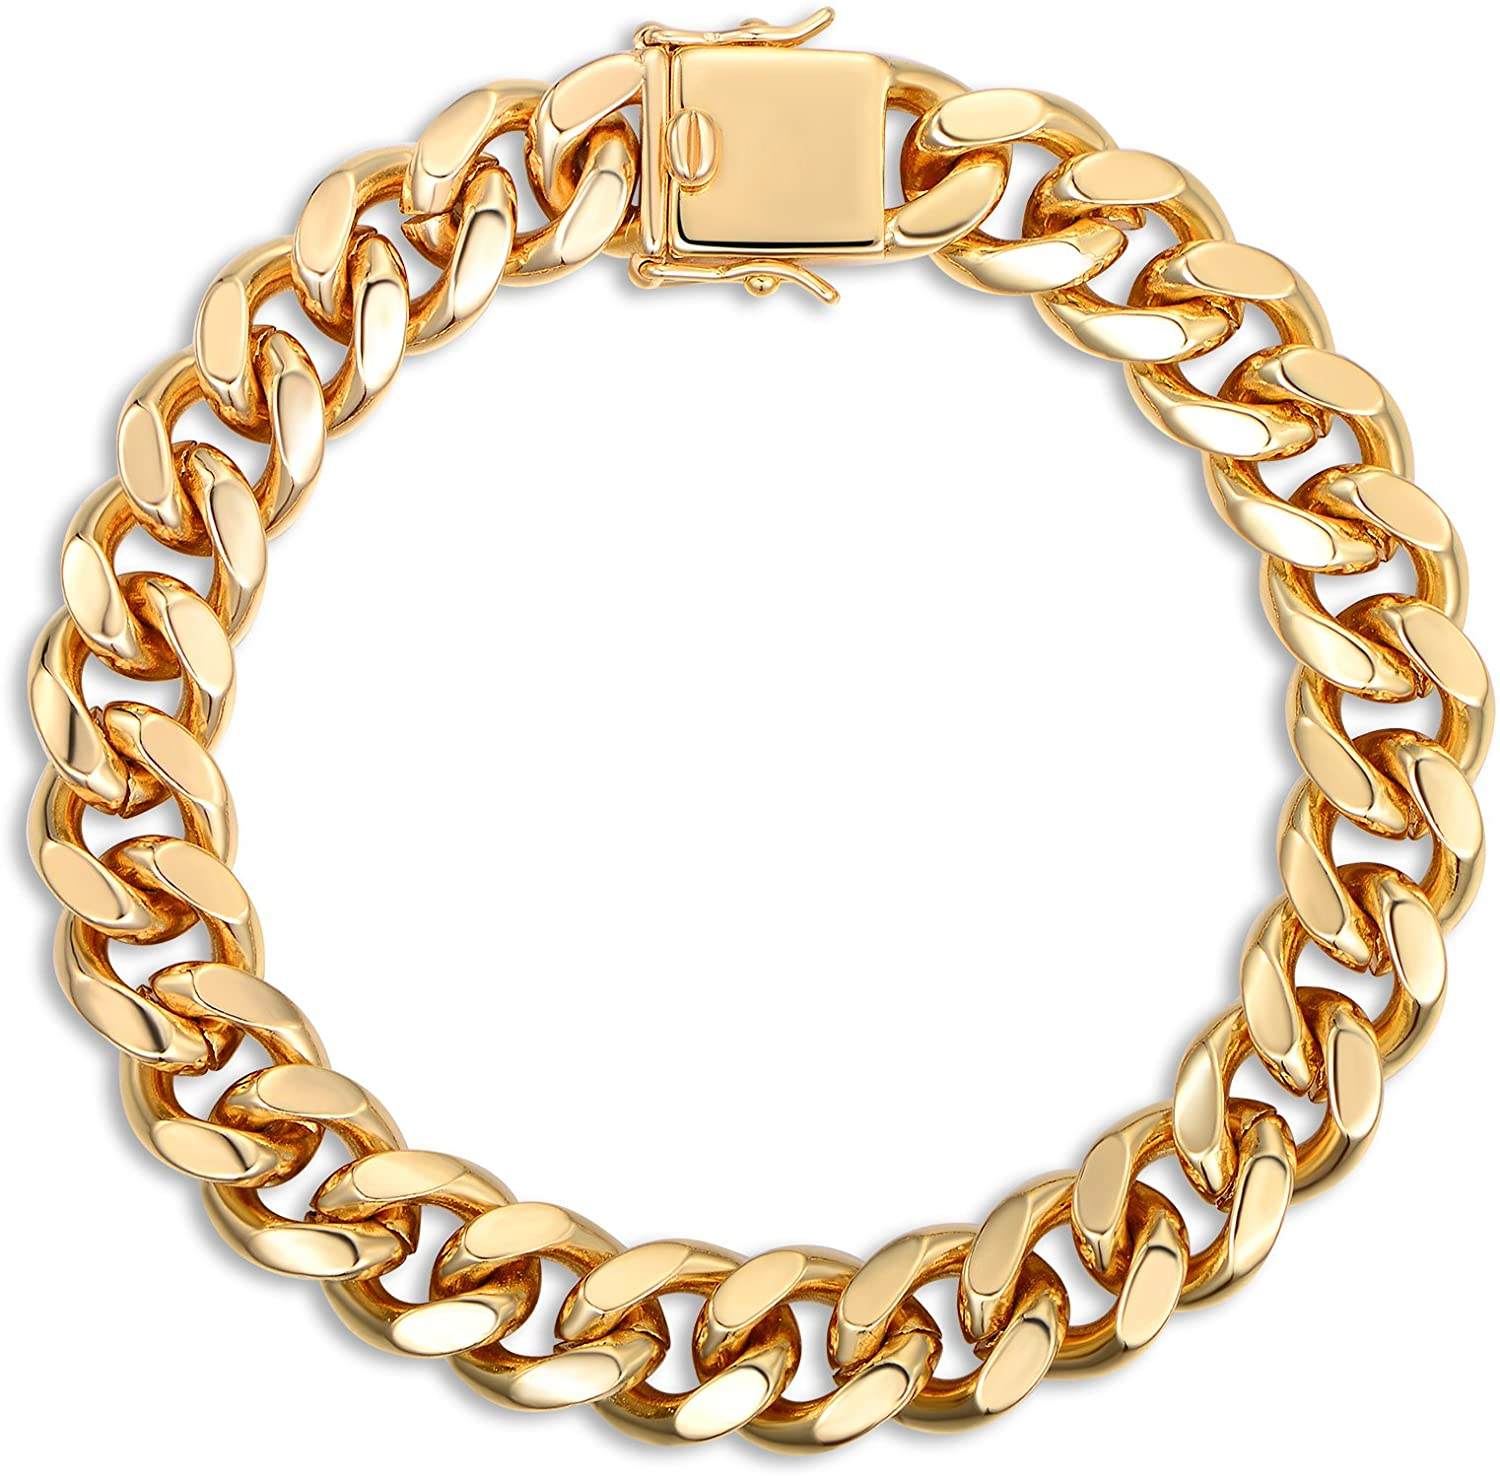 Barzel 18K Rose Gold Plated, White Gold Plated or Gold Plated 11MM Mens Cuban Chain Bracelet